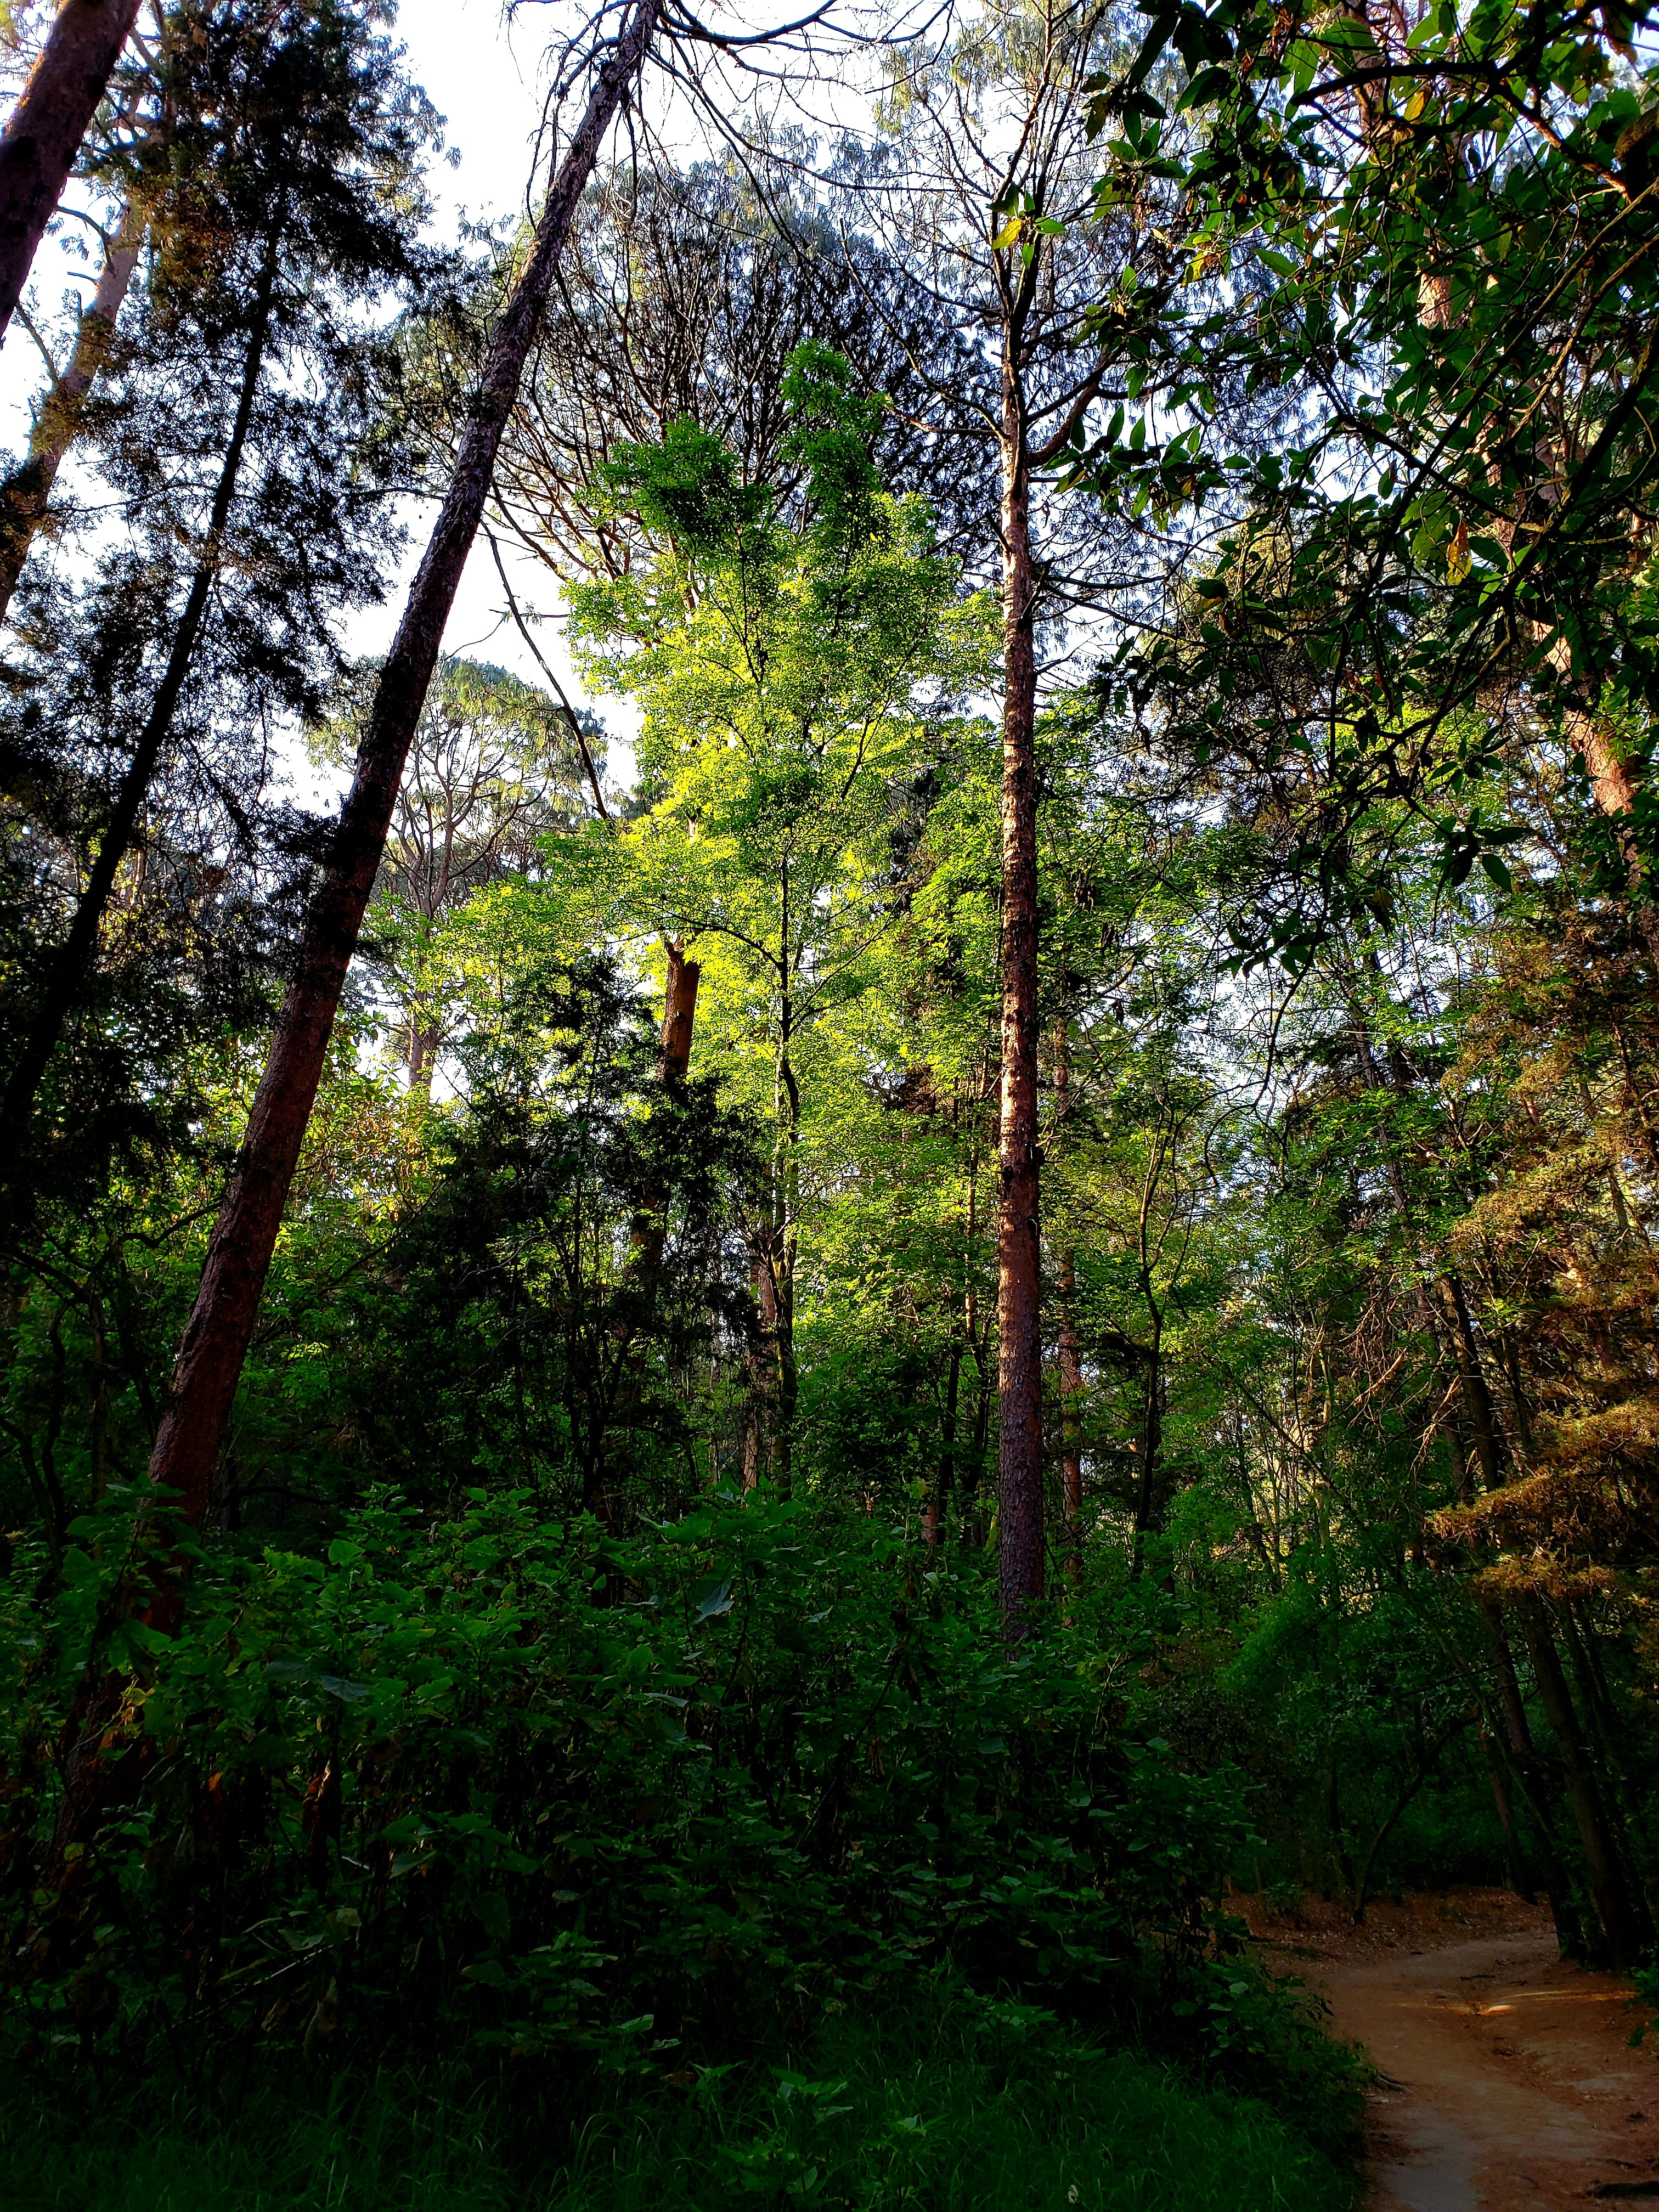 Free stock photo of beauty in nature, forest, lovemycountry, mexico